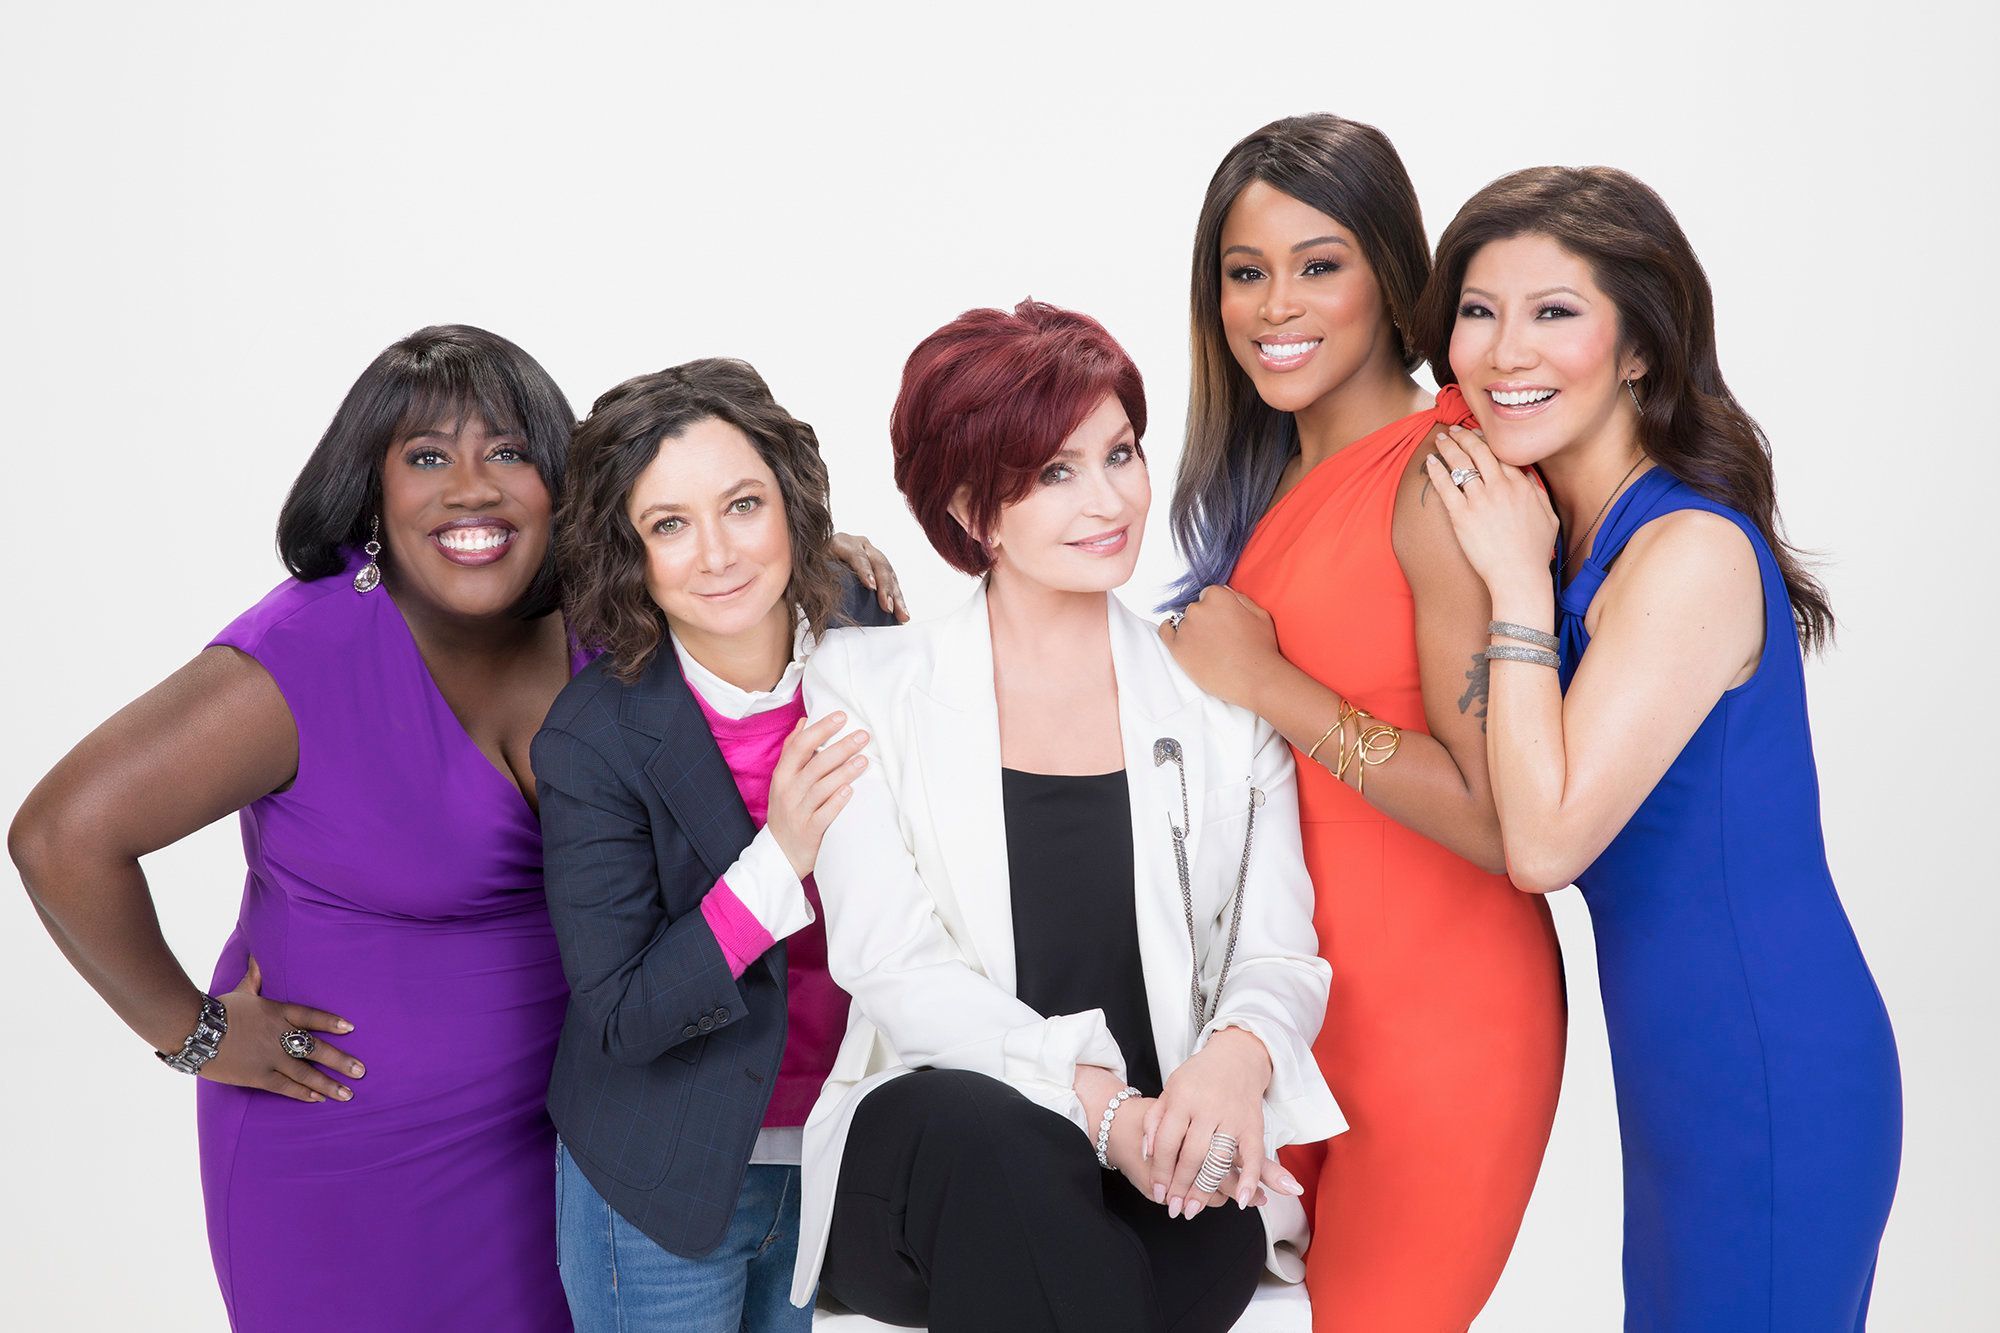 LOS ANGELES - NOVEMBER 15: The ladies of The Talk for the CBS Television Network. From left, Sheryl Underwood, Sara Gilbert, Sharon Osbourne, Eve and Julie Chen, shown. (Photo by Sonja Flemming/CBS via Getty Images)